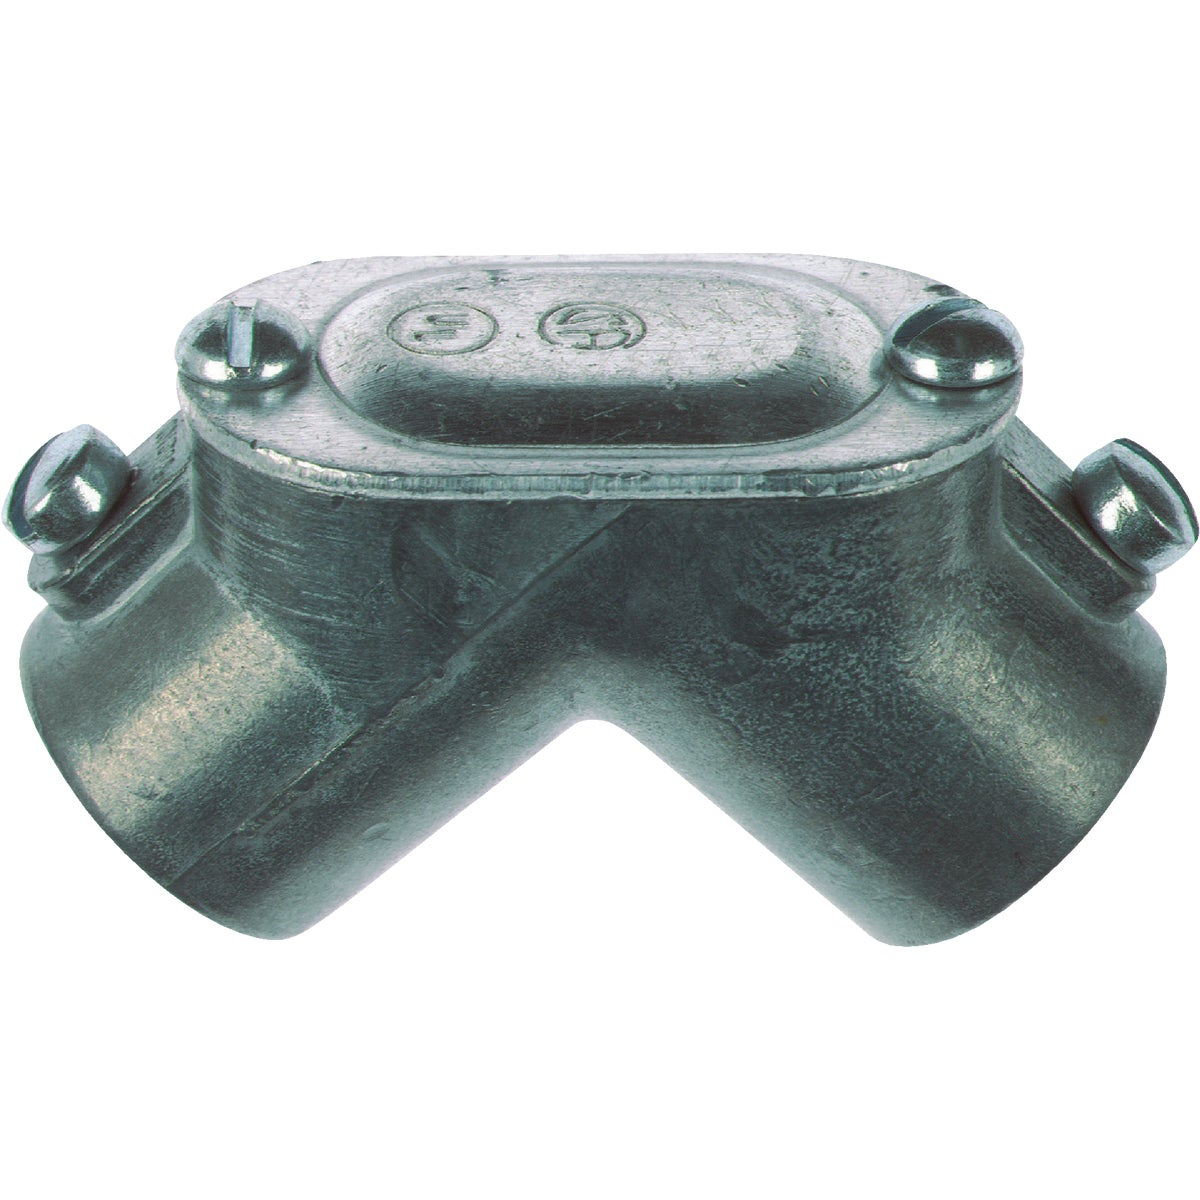 """3/4"""" EMT PULL ELBOW - TL2021 by Thomas & Betts"""